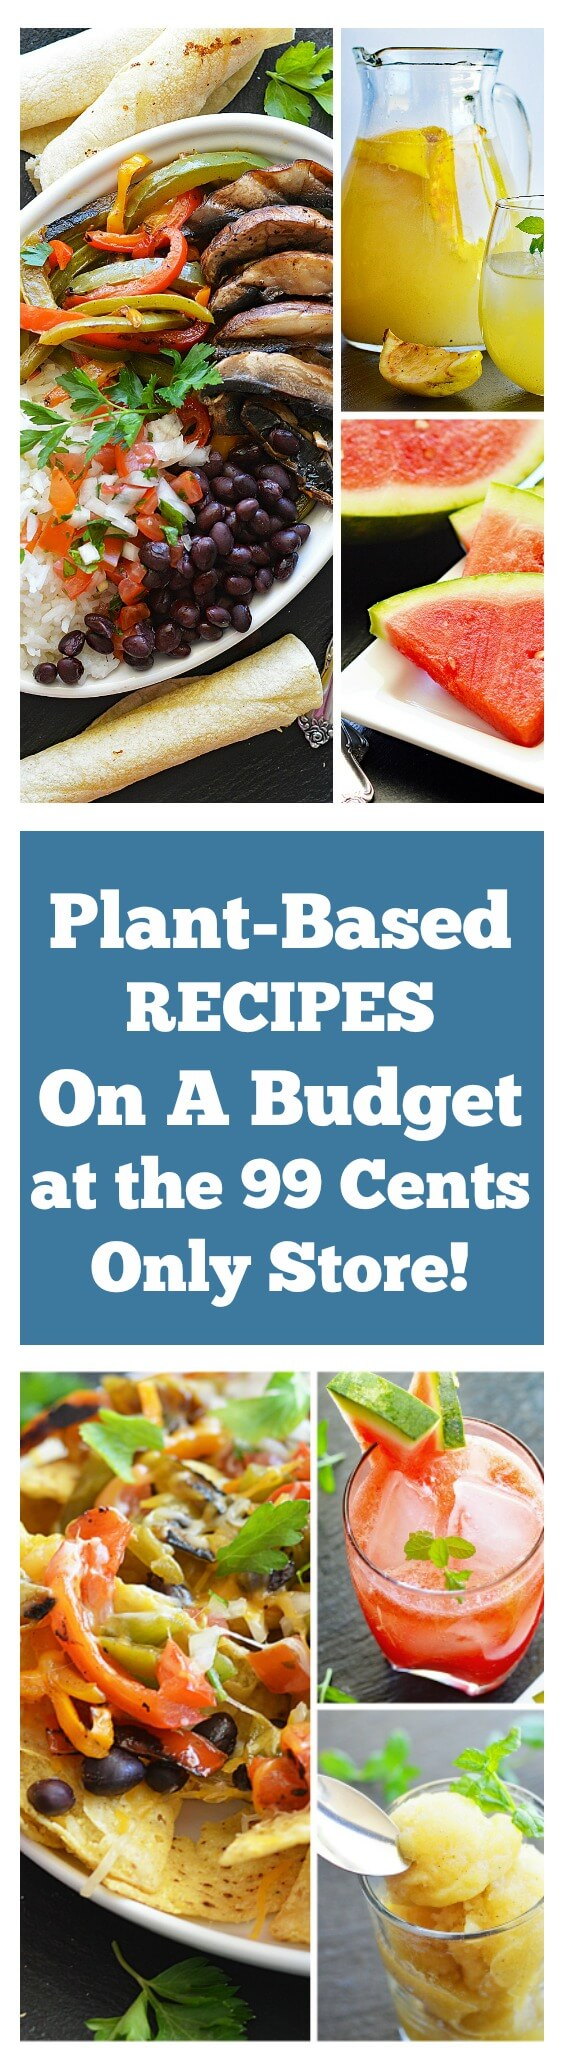 99 Cent Store Food Recipes plant based recipes on a budget with the 99!